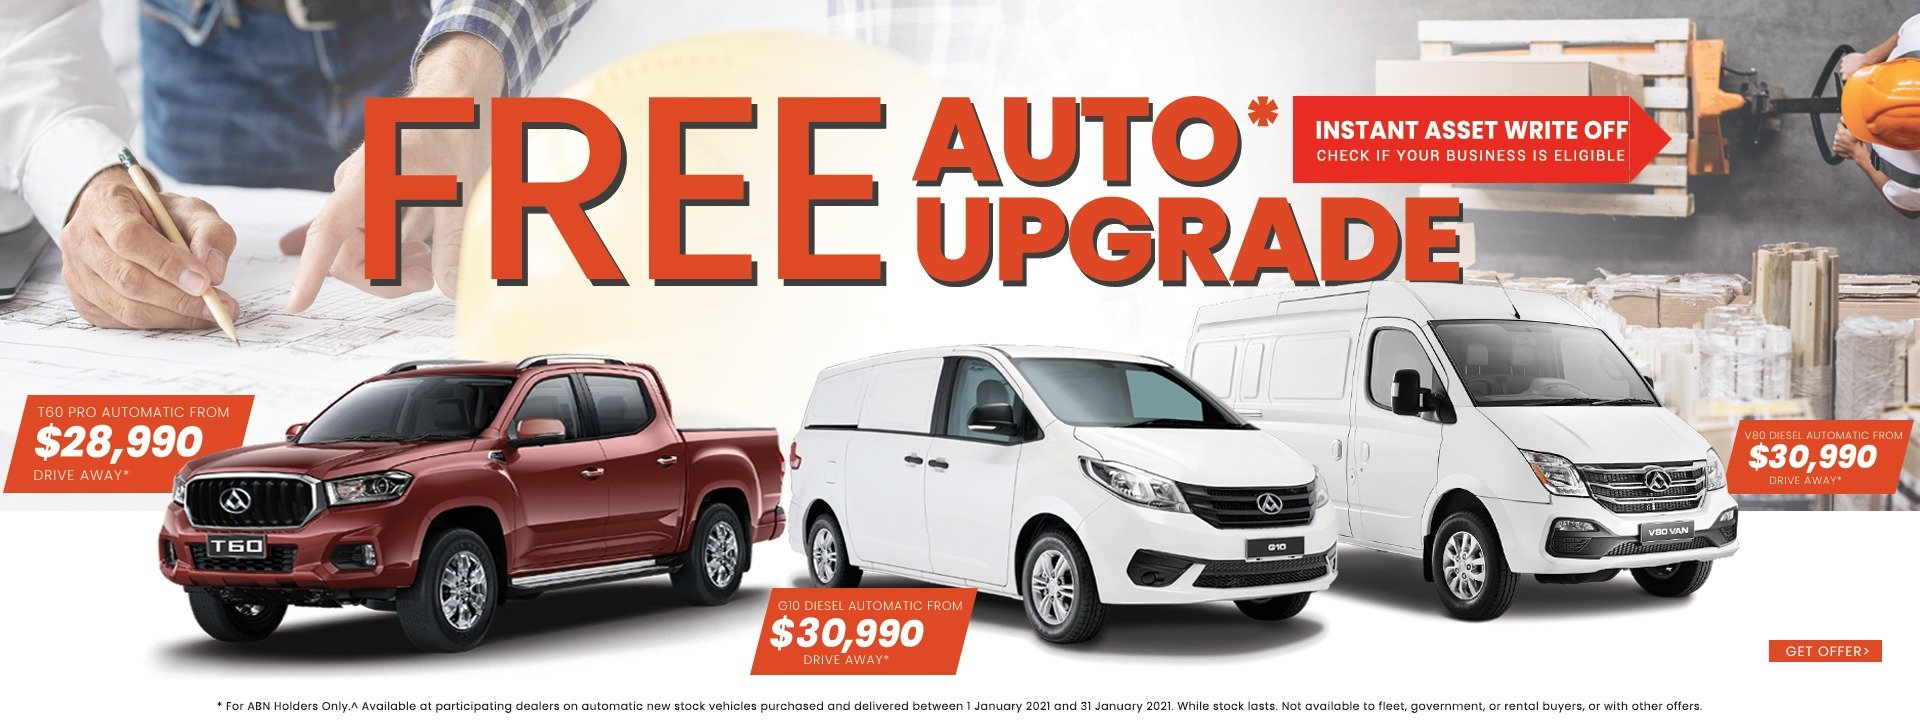 ldv_vehicle_sale